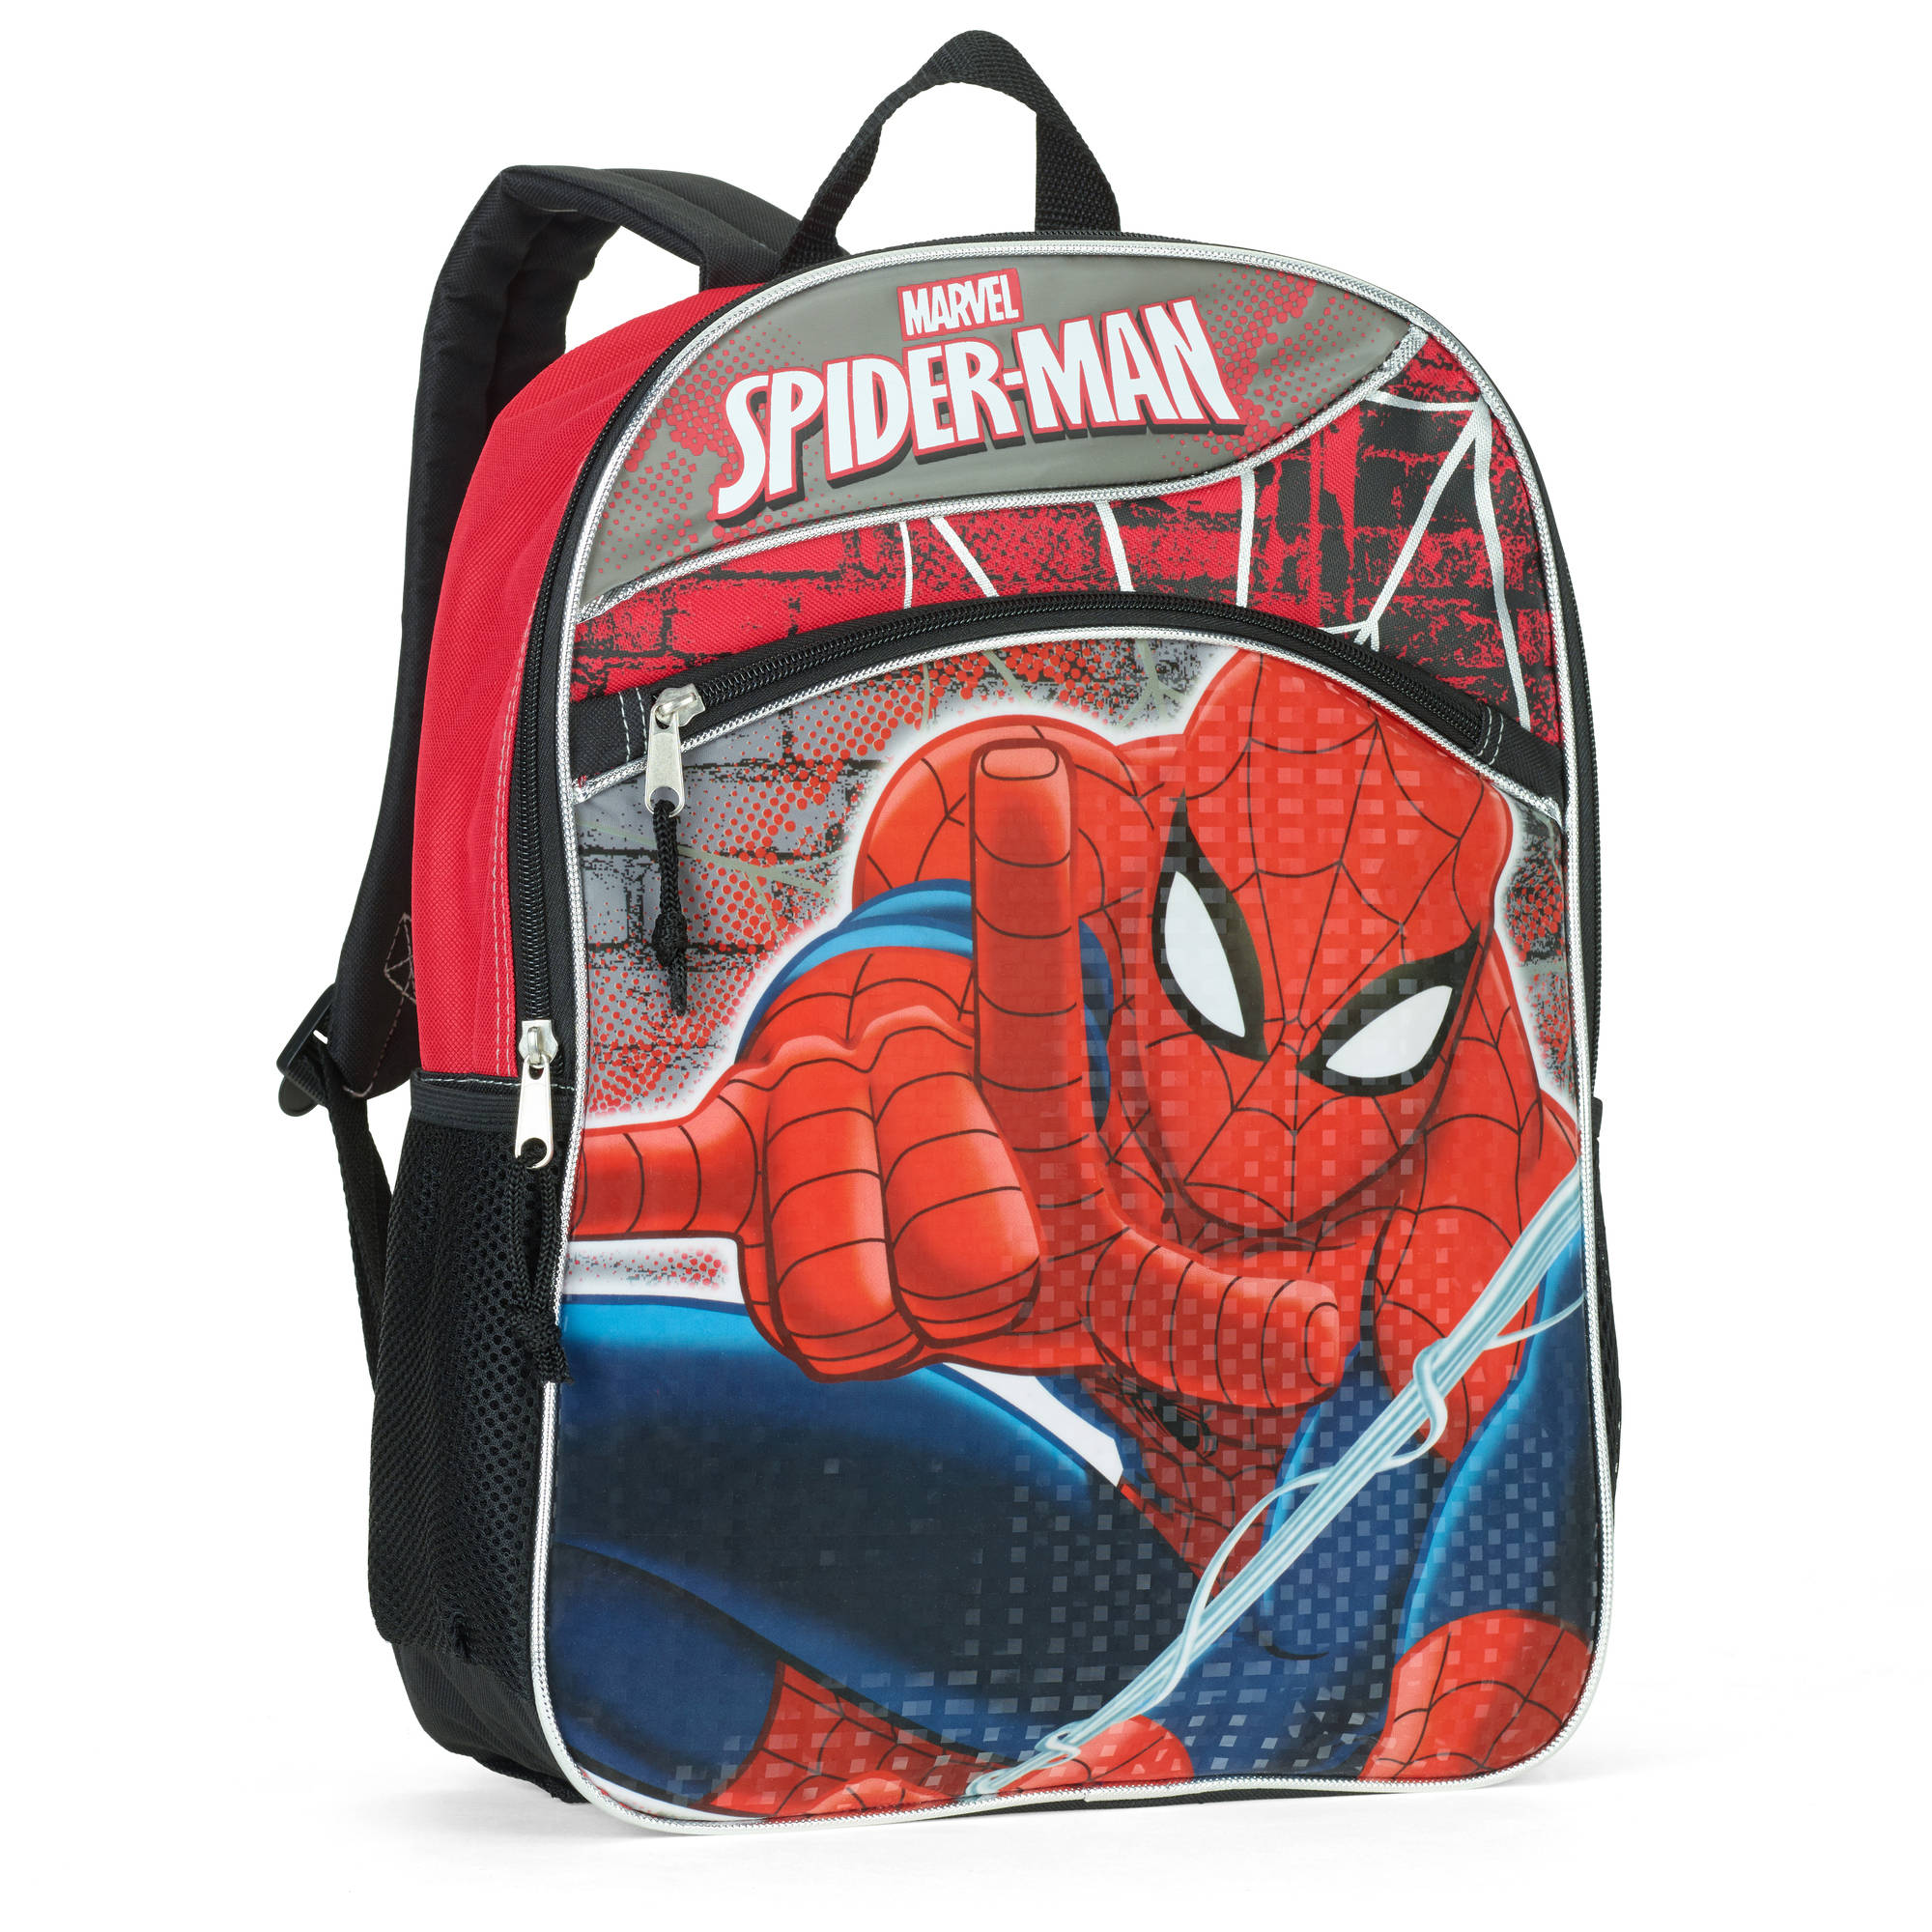 "Marvel Spiderman 16"" Full Size Backpack"